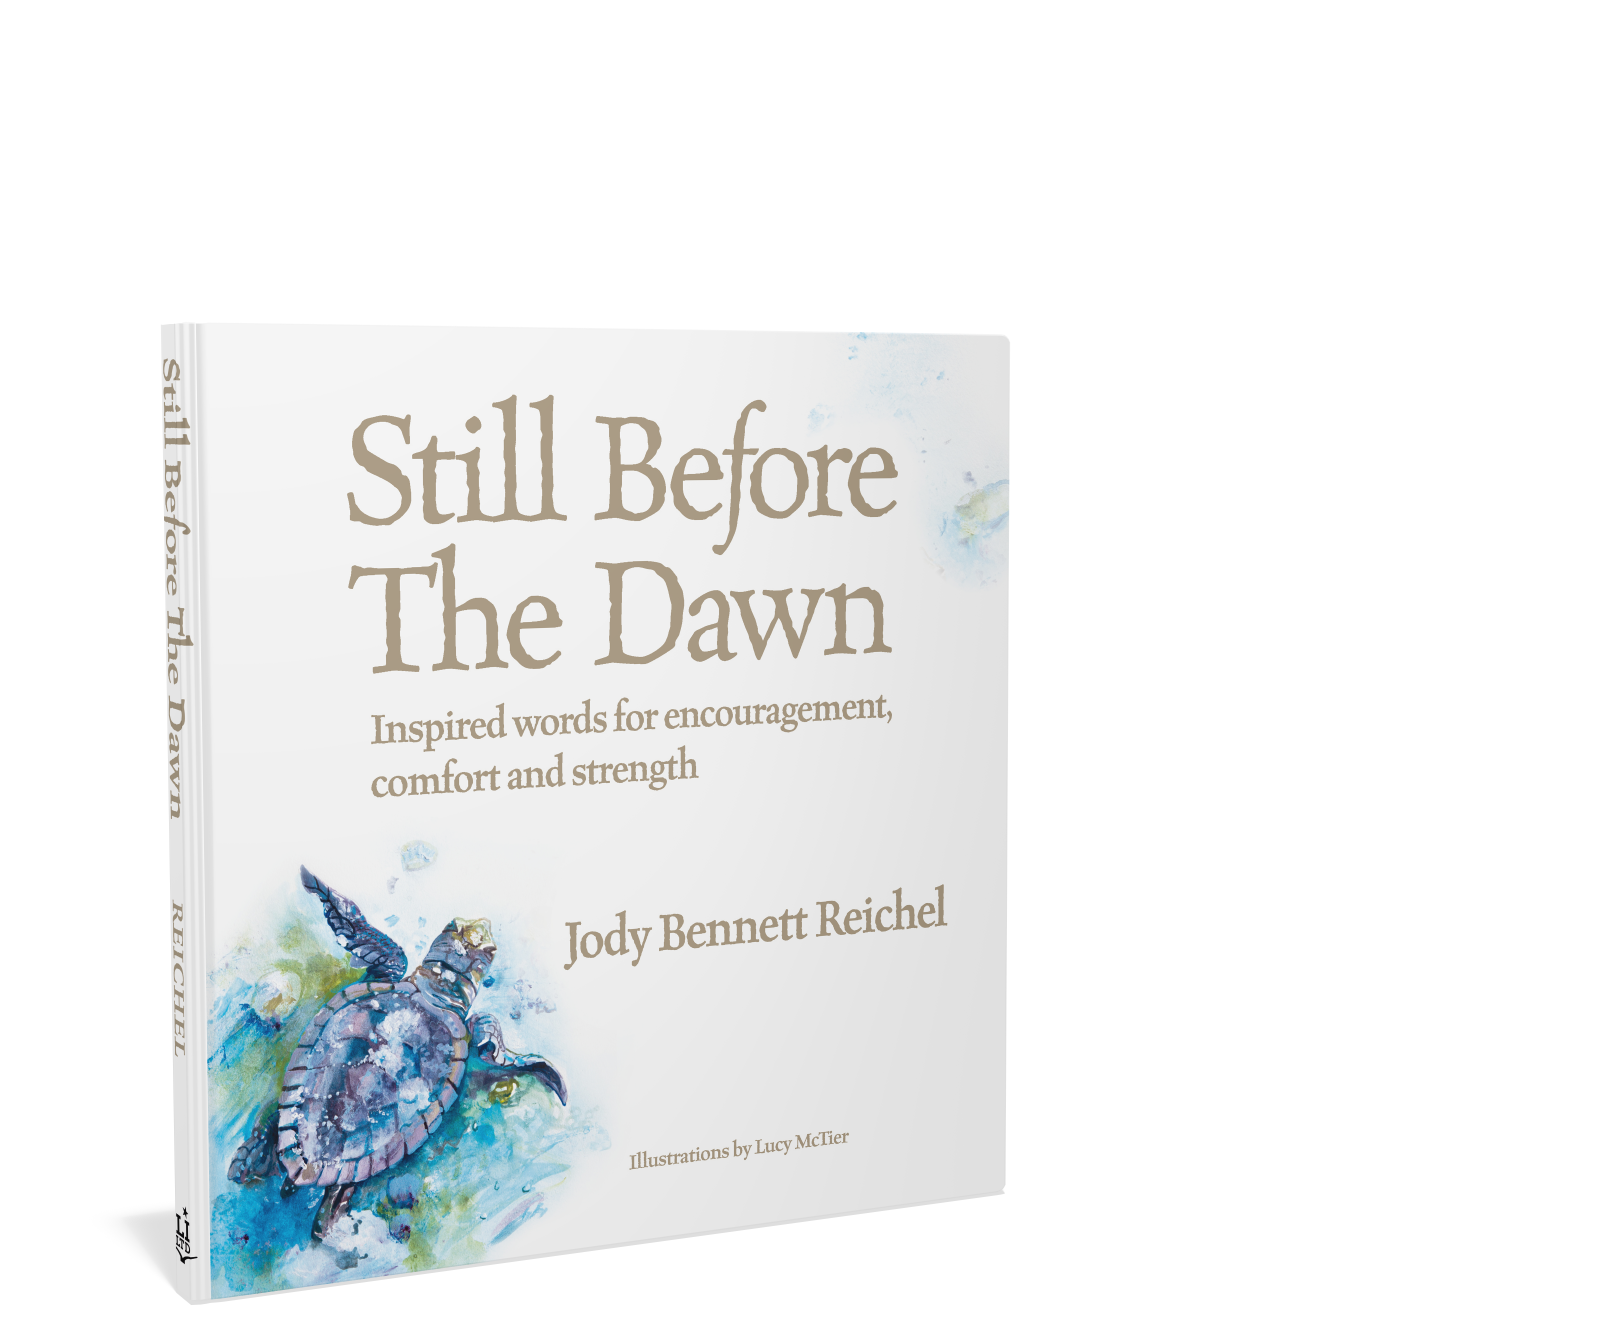 Still Before the Dawn, Inspirational book. Beautiful coastal watercolors throughout. Jody Reichel and Starbooks